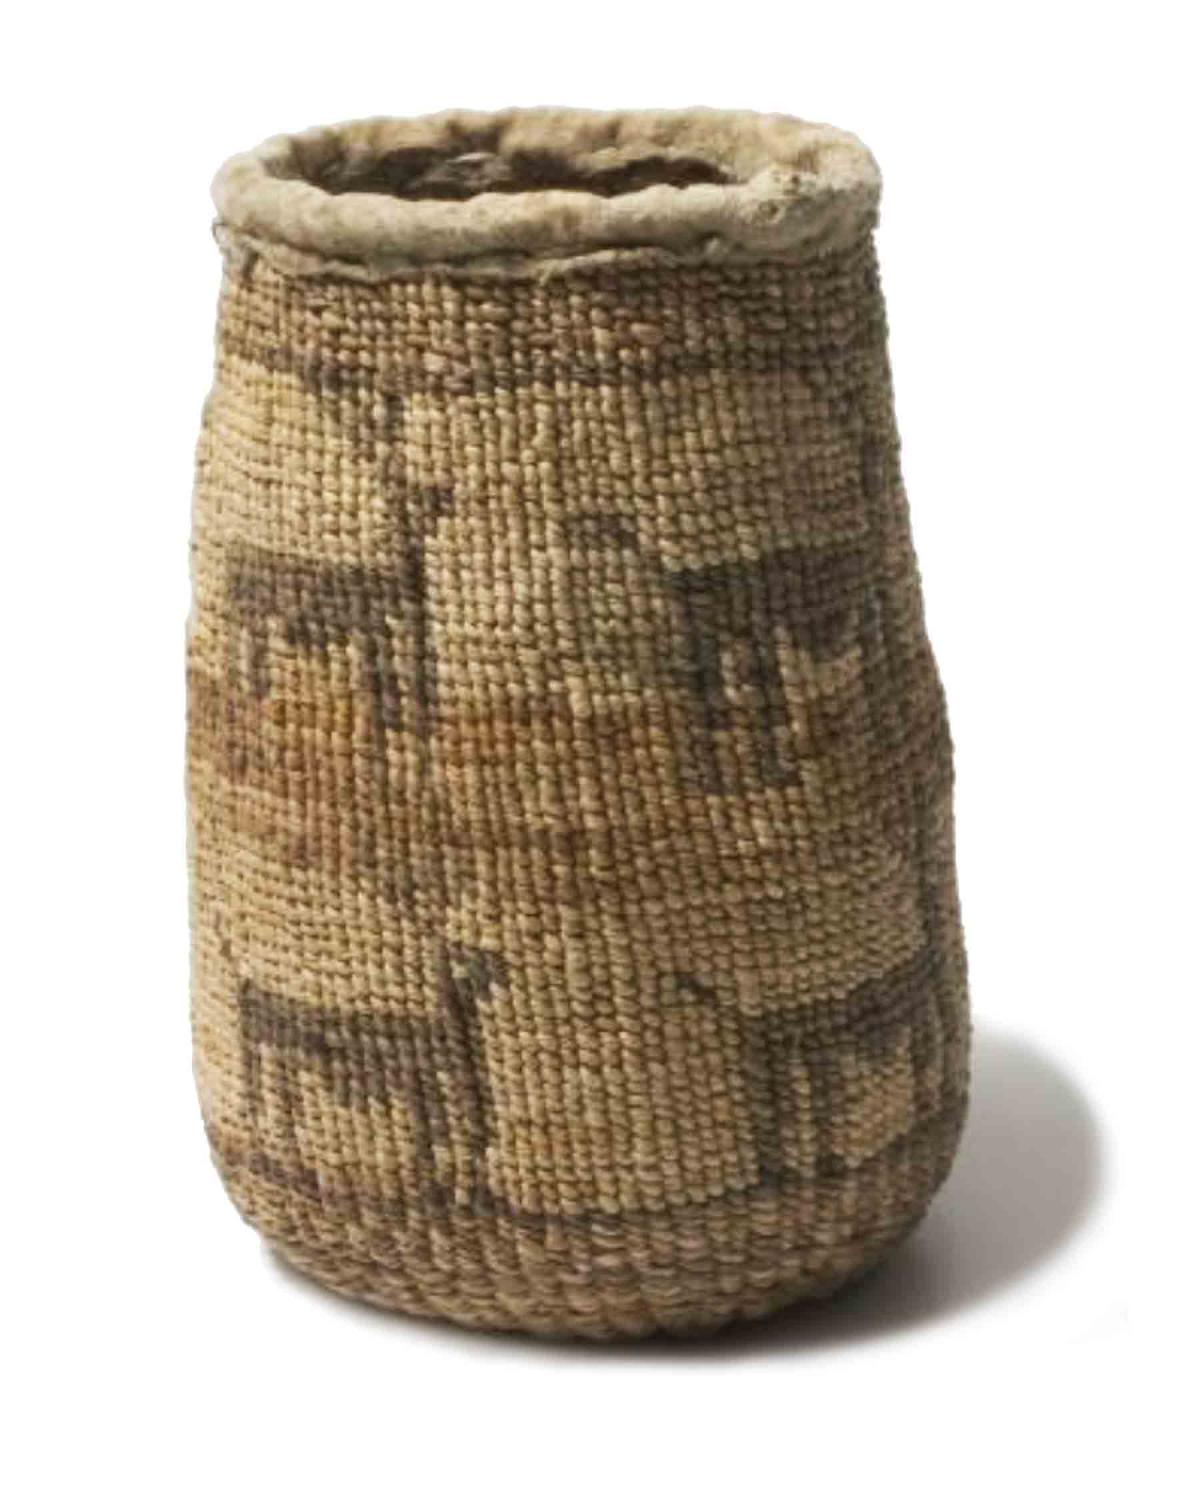 a woven bag or basket for gathering roots